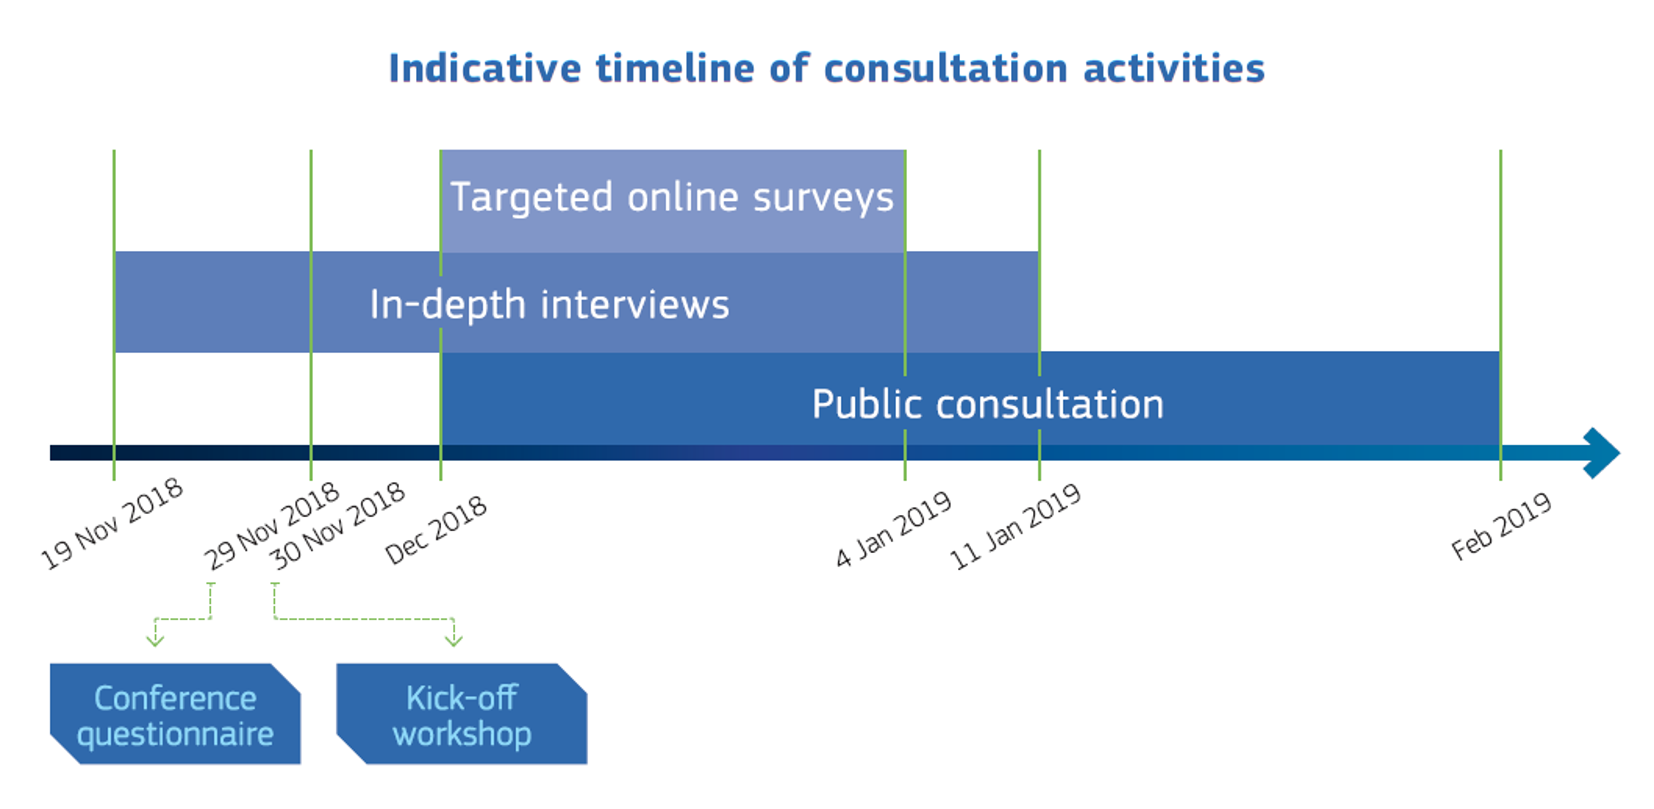 ISA² Interim Evaluation - Indicative timeline of consultation activities